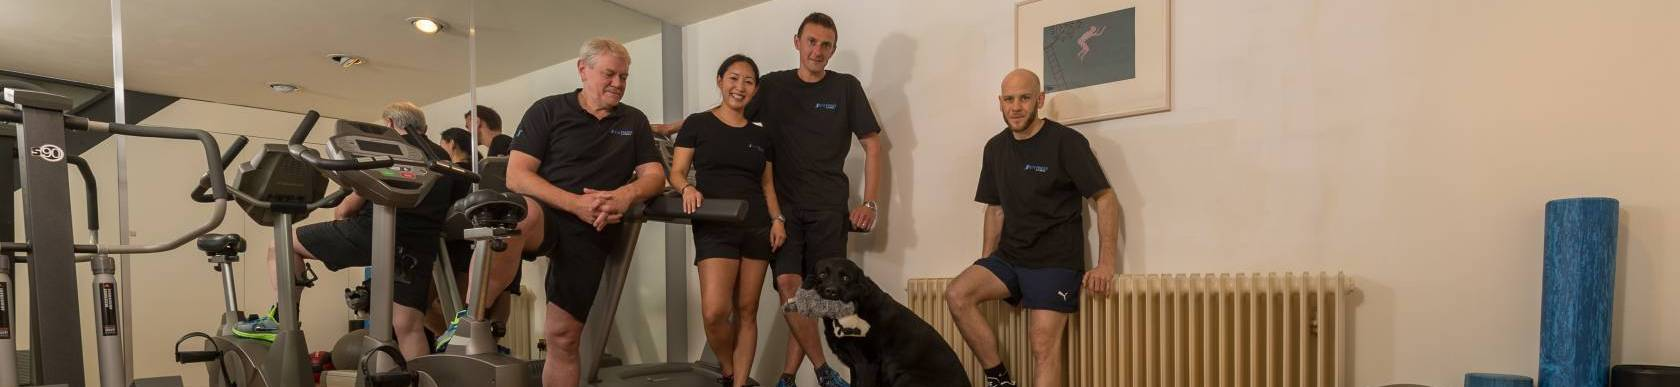 Personal Trainers Mayfair London